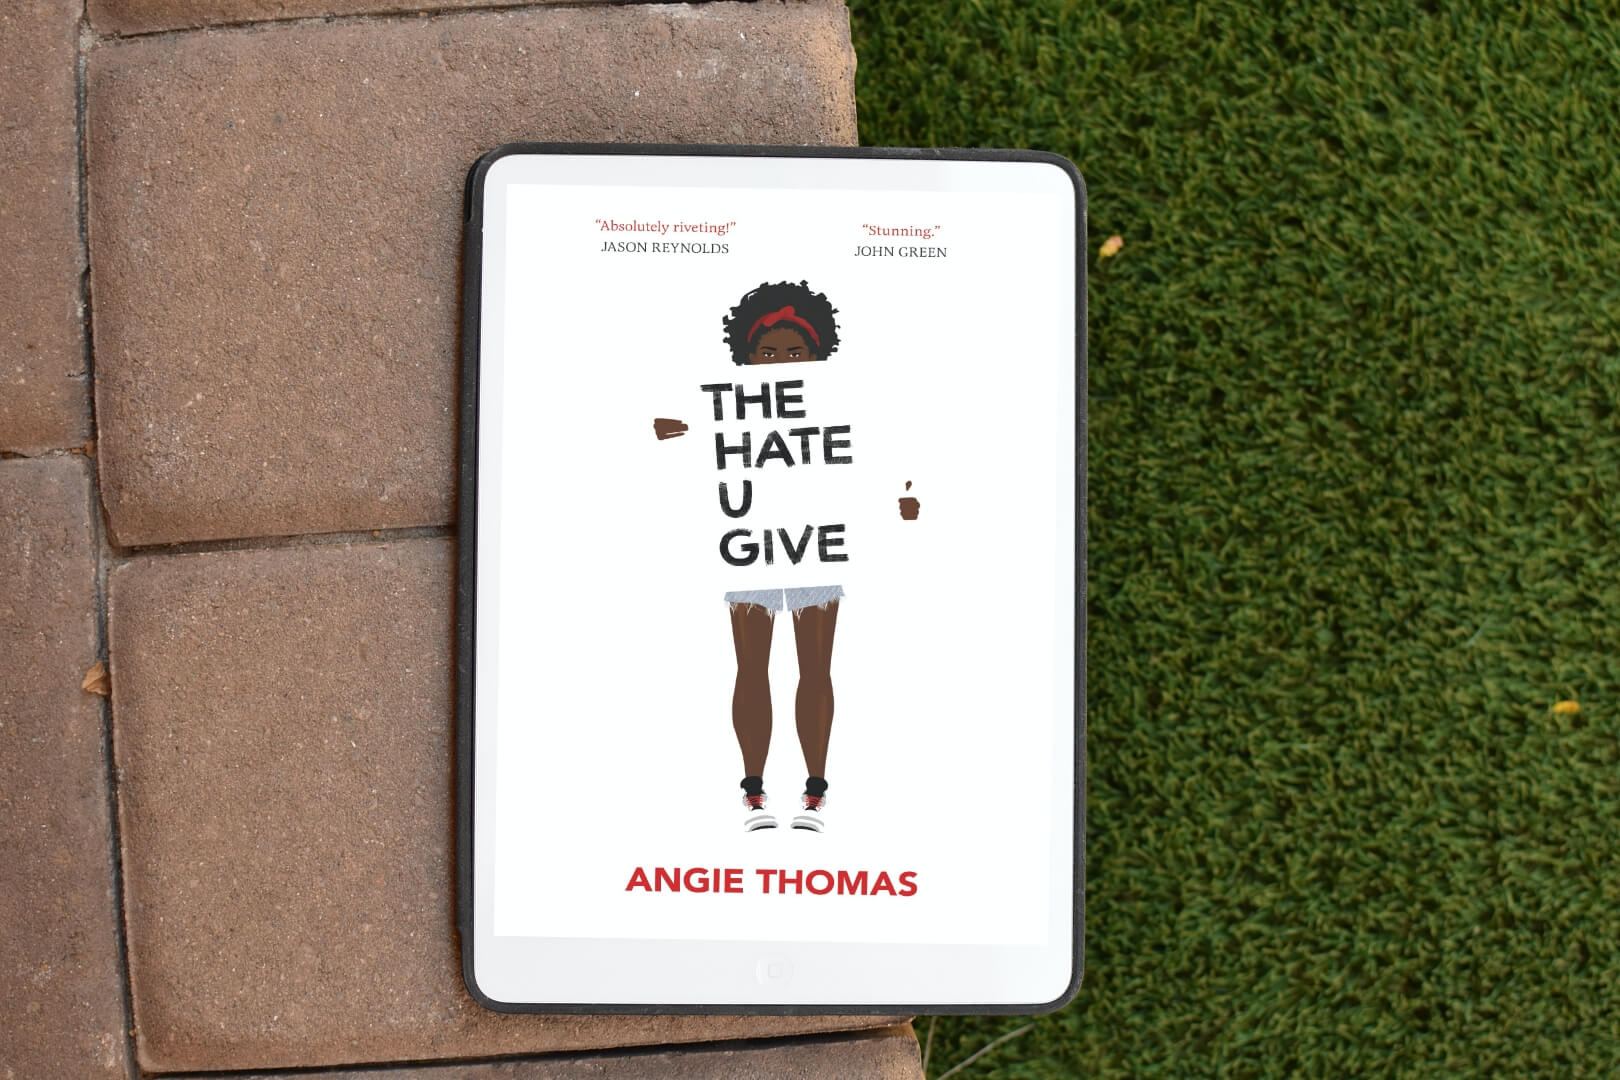 the hate u give review - book club chat